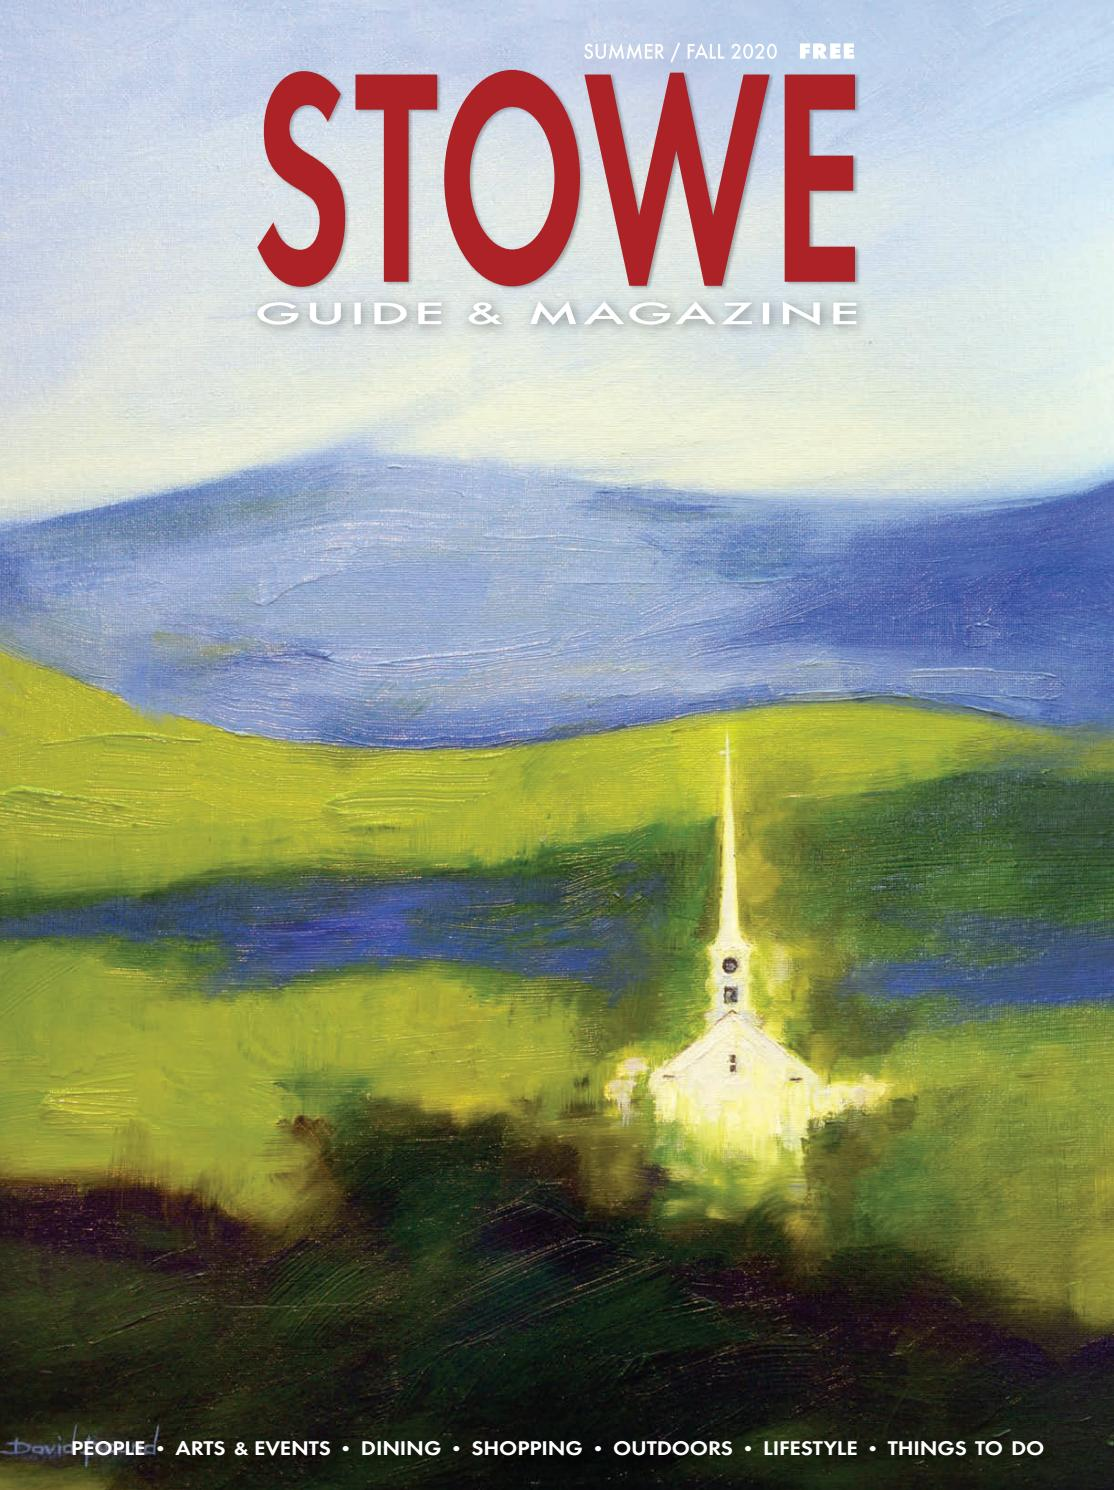 Stowe Guide Magazine Summer Fall 2020 By Stowe Guide Magazine Issuu